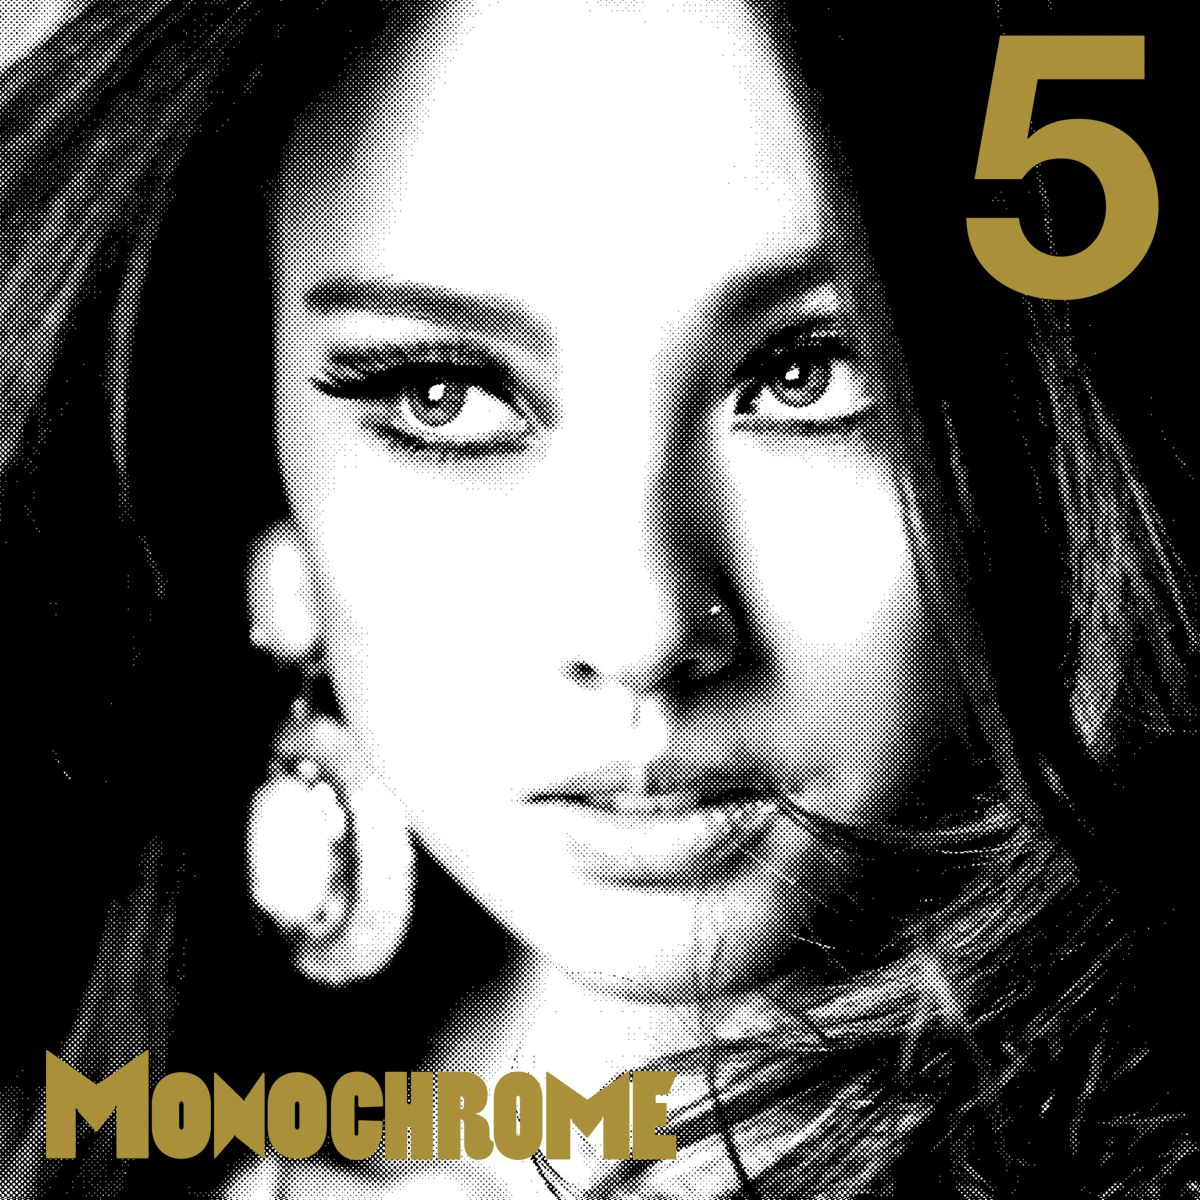 [Album] Lee Hyori - Monochrome (VOL. 5)